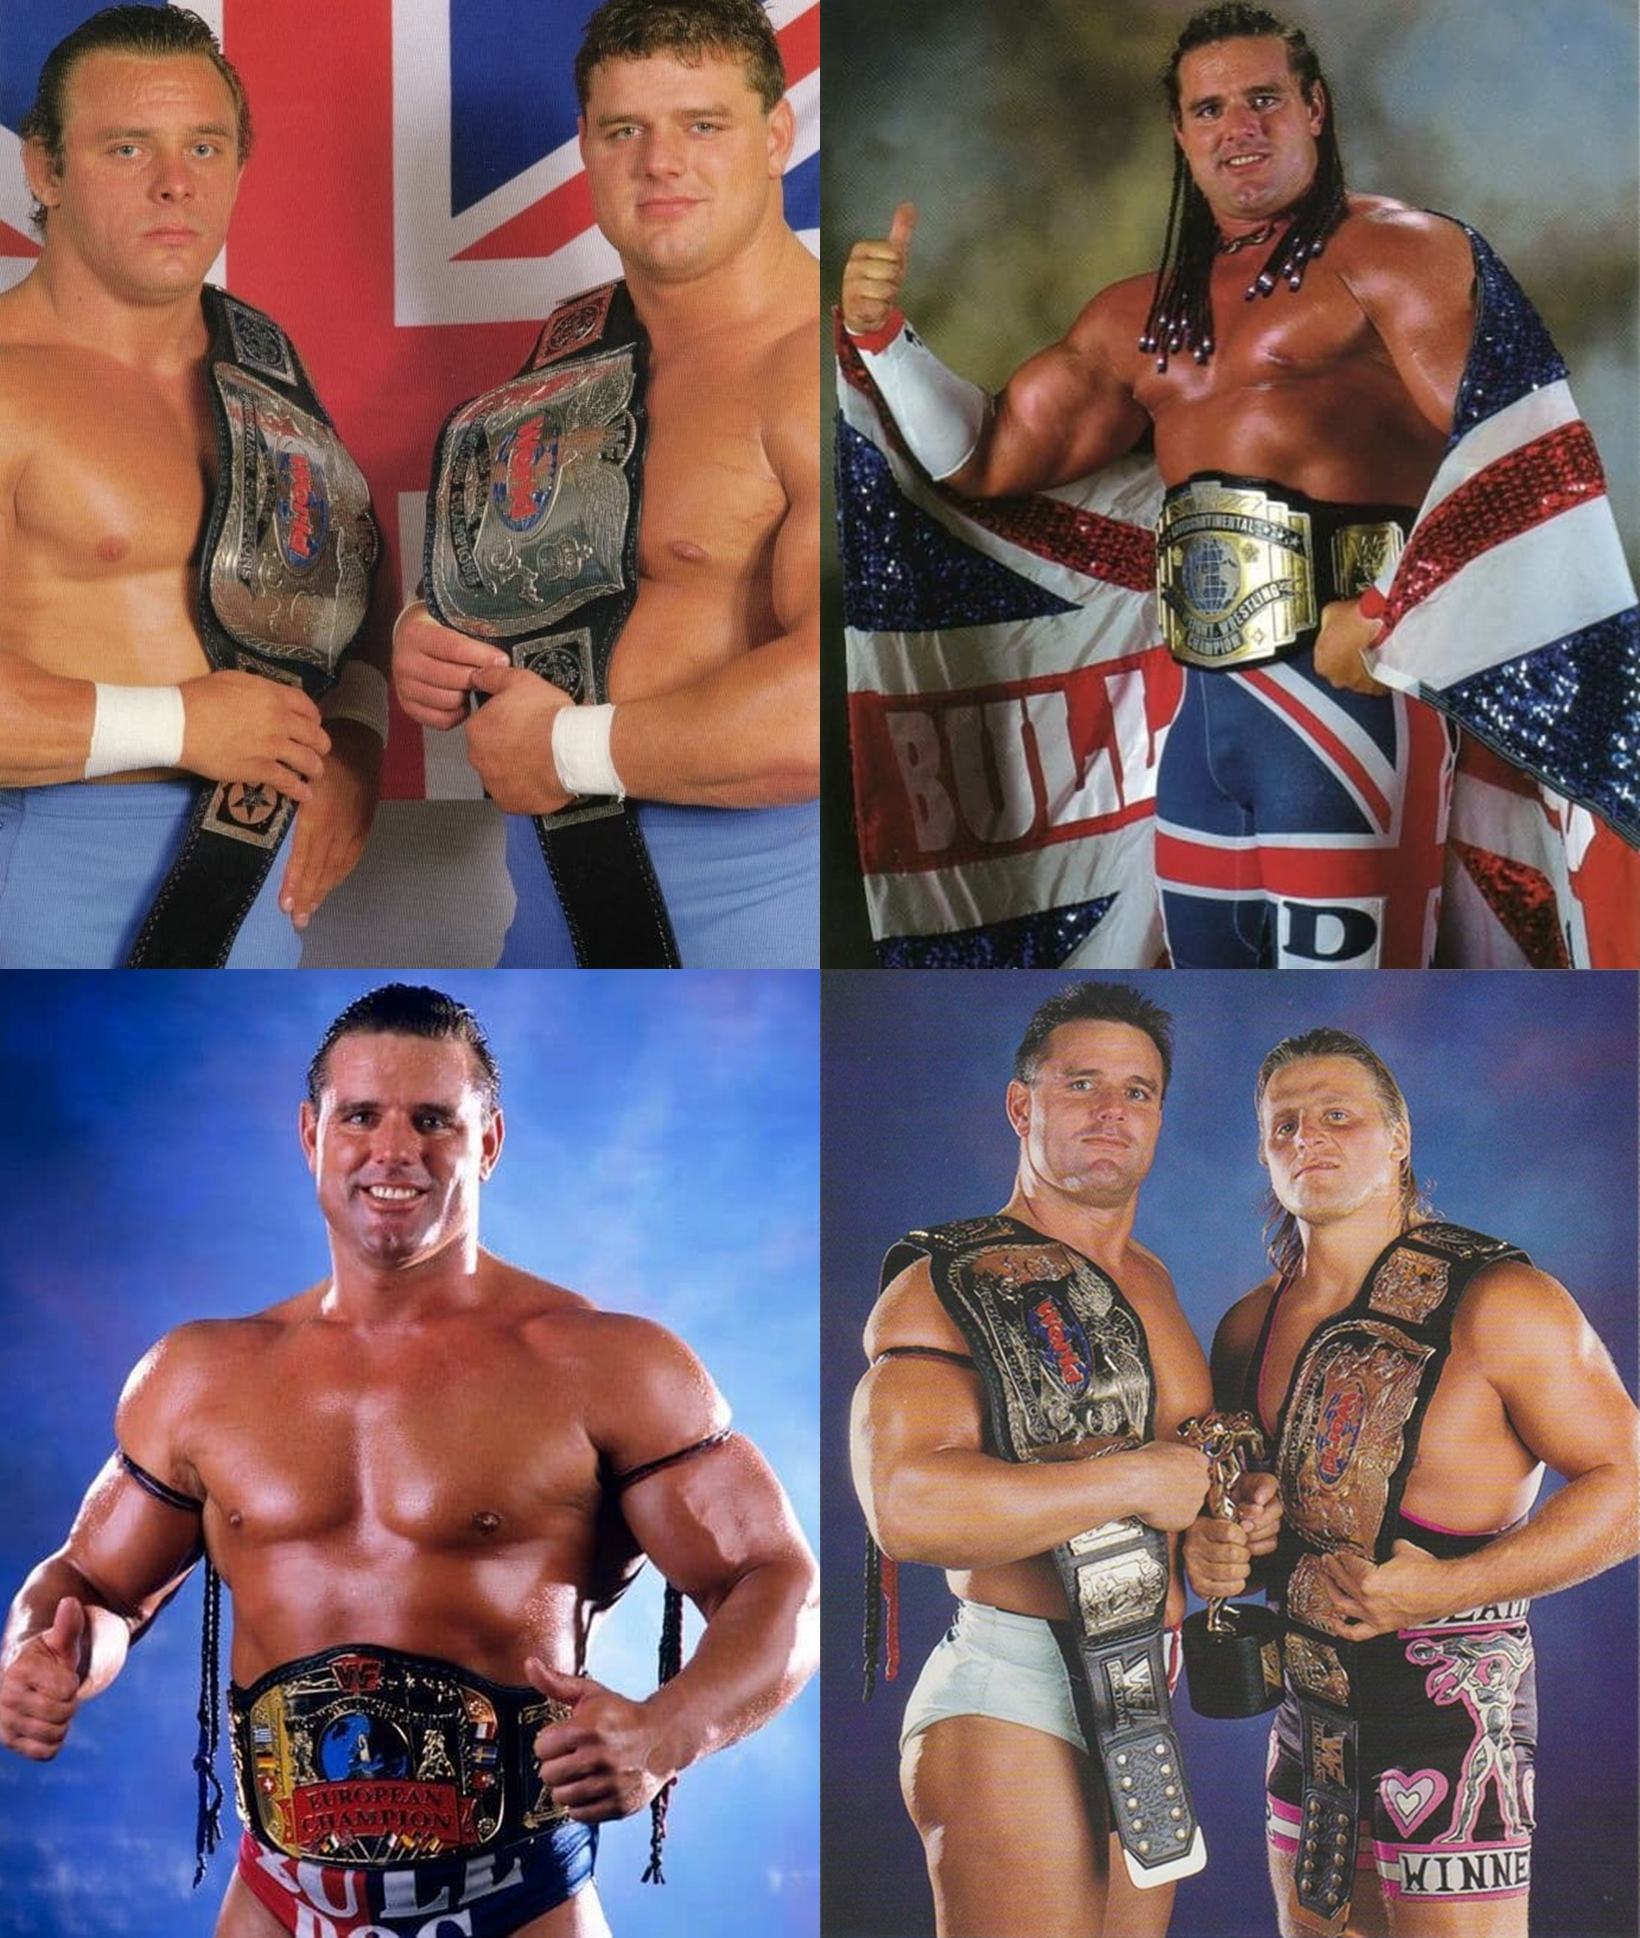 """The British Bulldog"" Davey Boy Smith To Be Inducted Into The 2020 WWE Hall Of Fame"